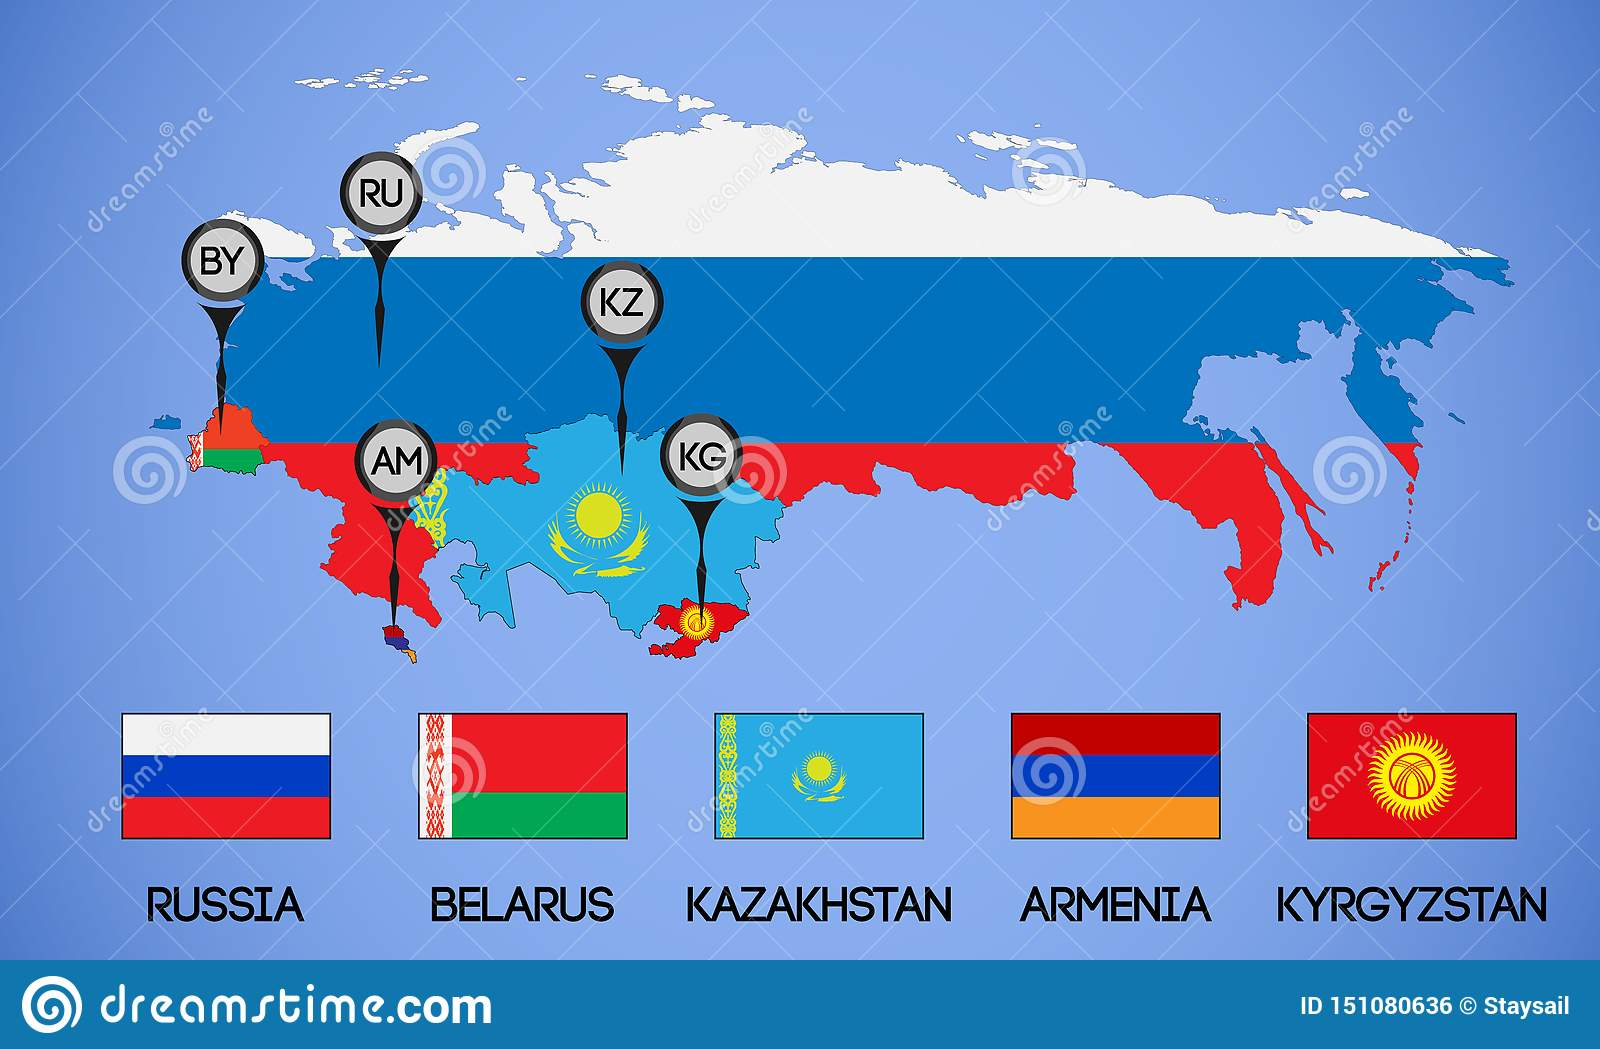 Map Of The Member States Of The Eurasian Economic Union ...